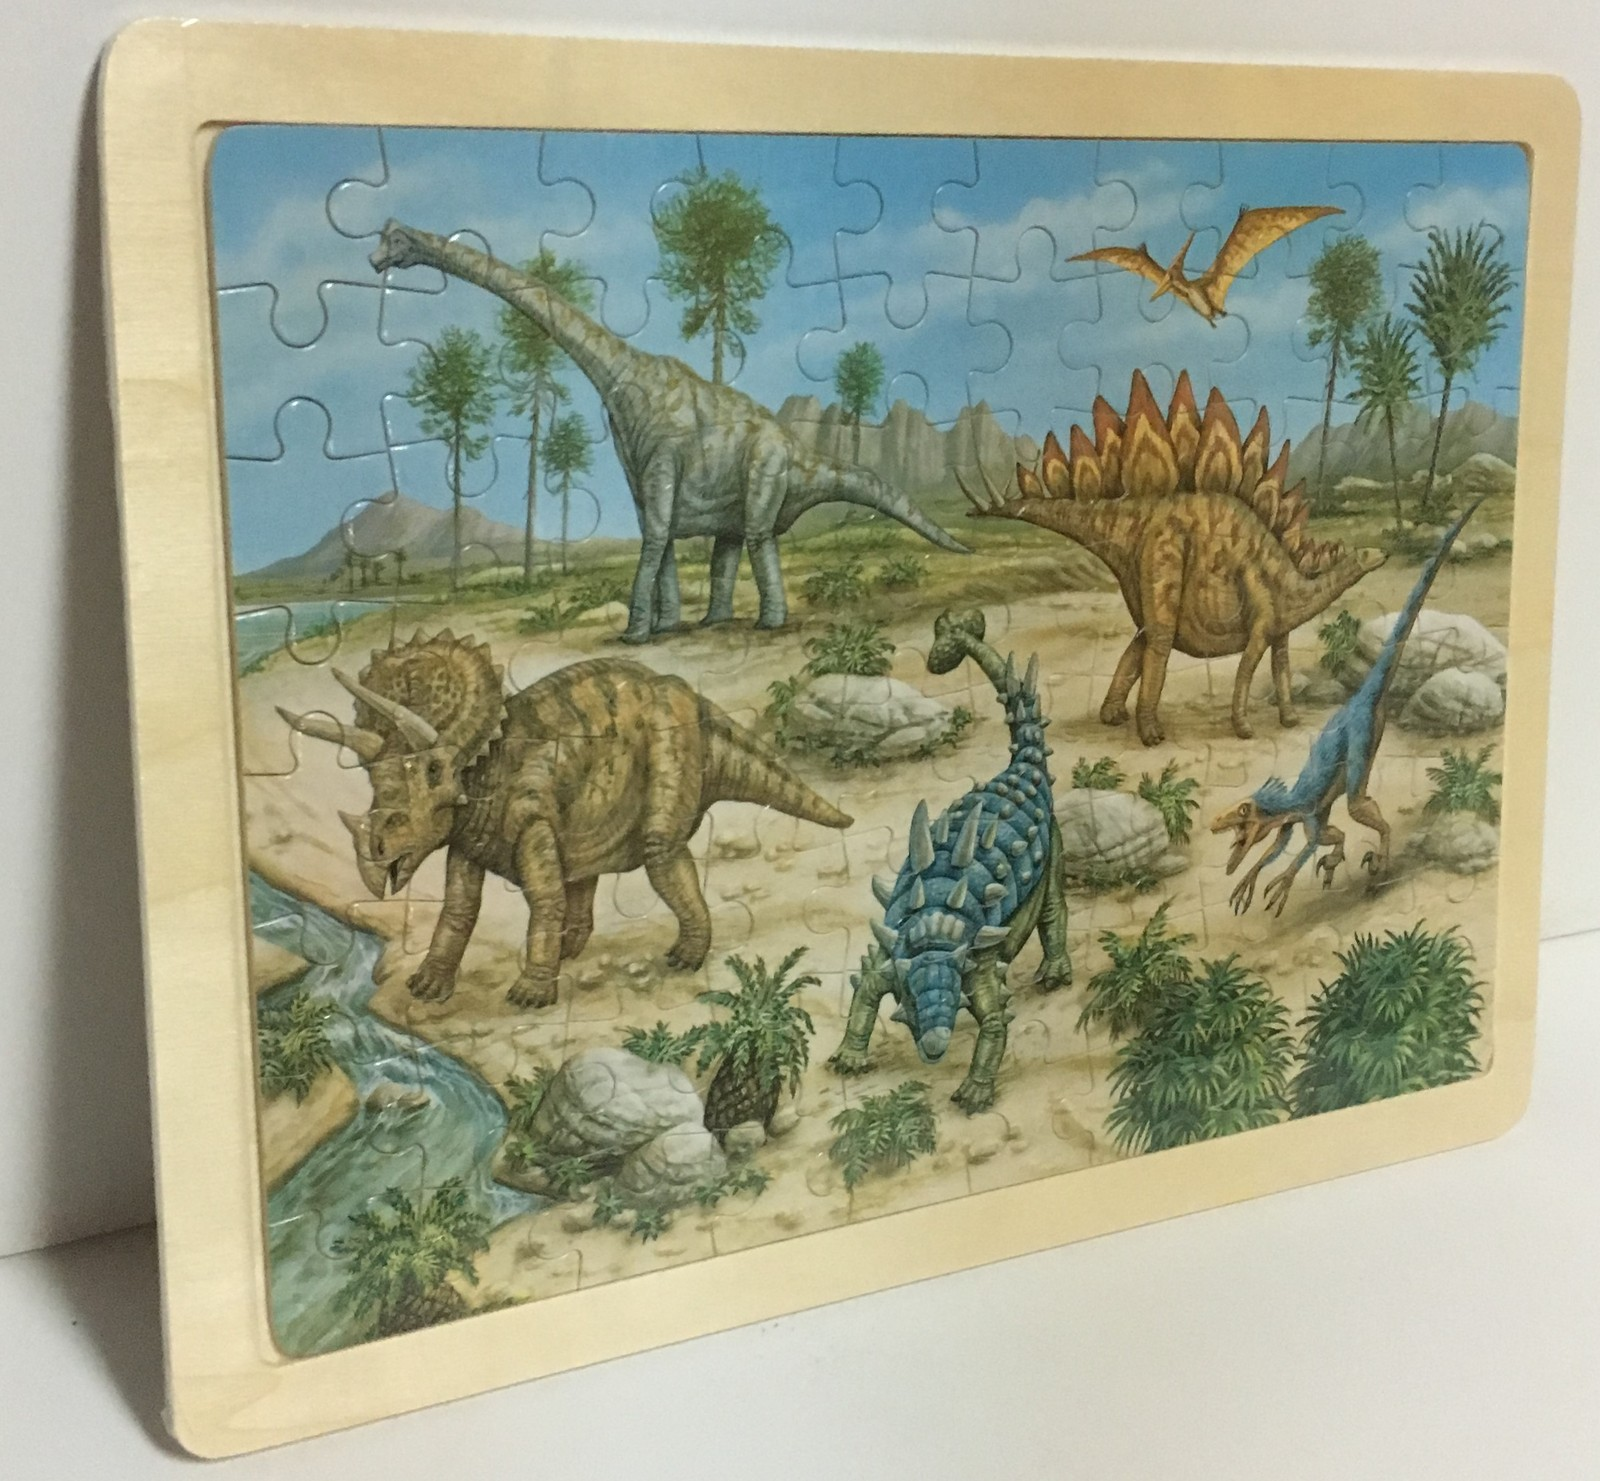 "Hands Craft Wood Frame Dinosaurs Jigsaw Puzzle 80 Piece 9"" x 12"" Ages 5+"